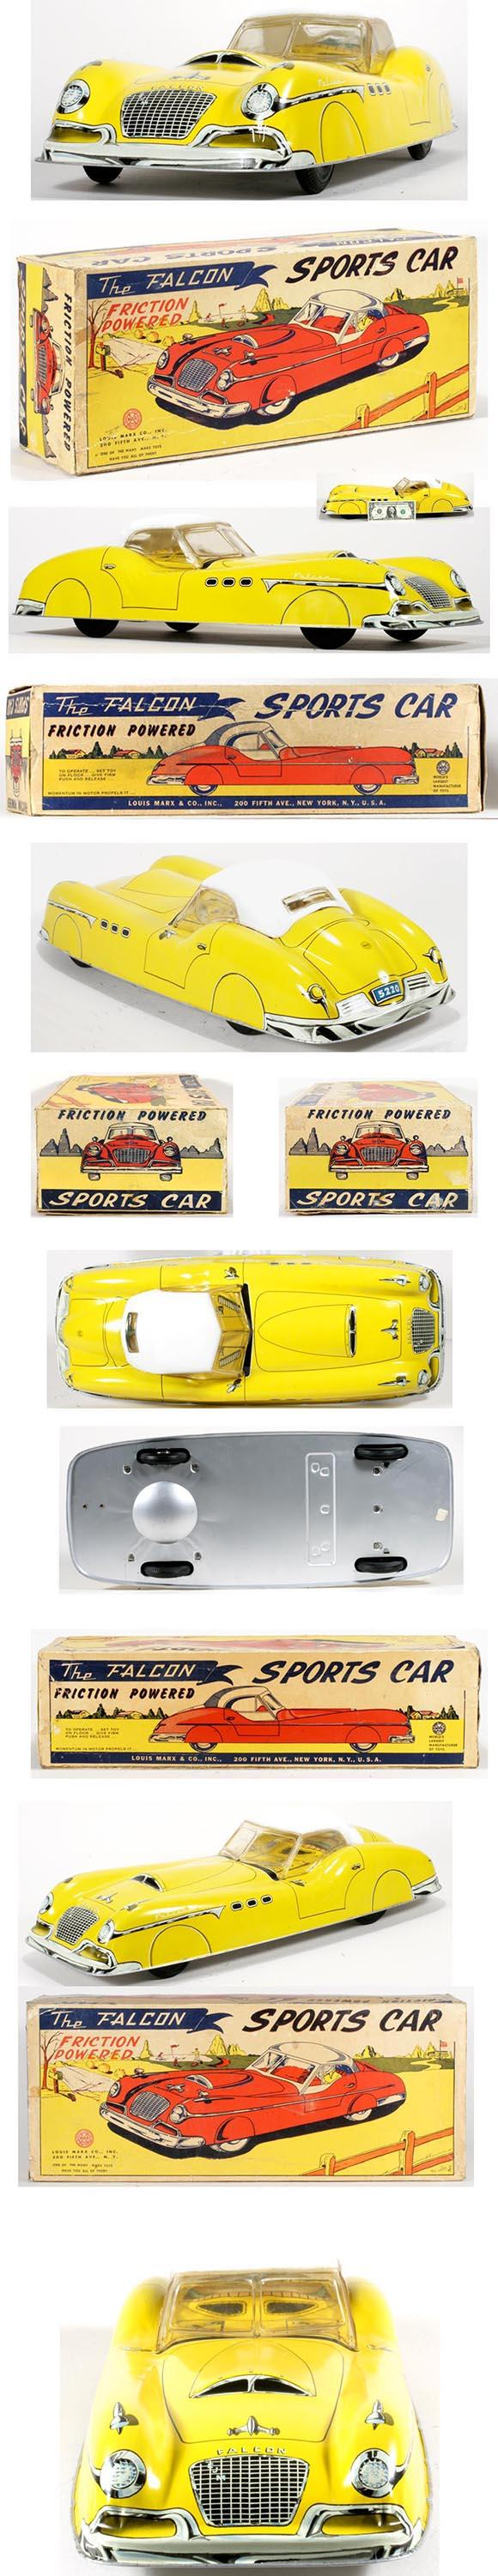 1956 Marx, The Falcon Friction Sports Car in Original Box